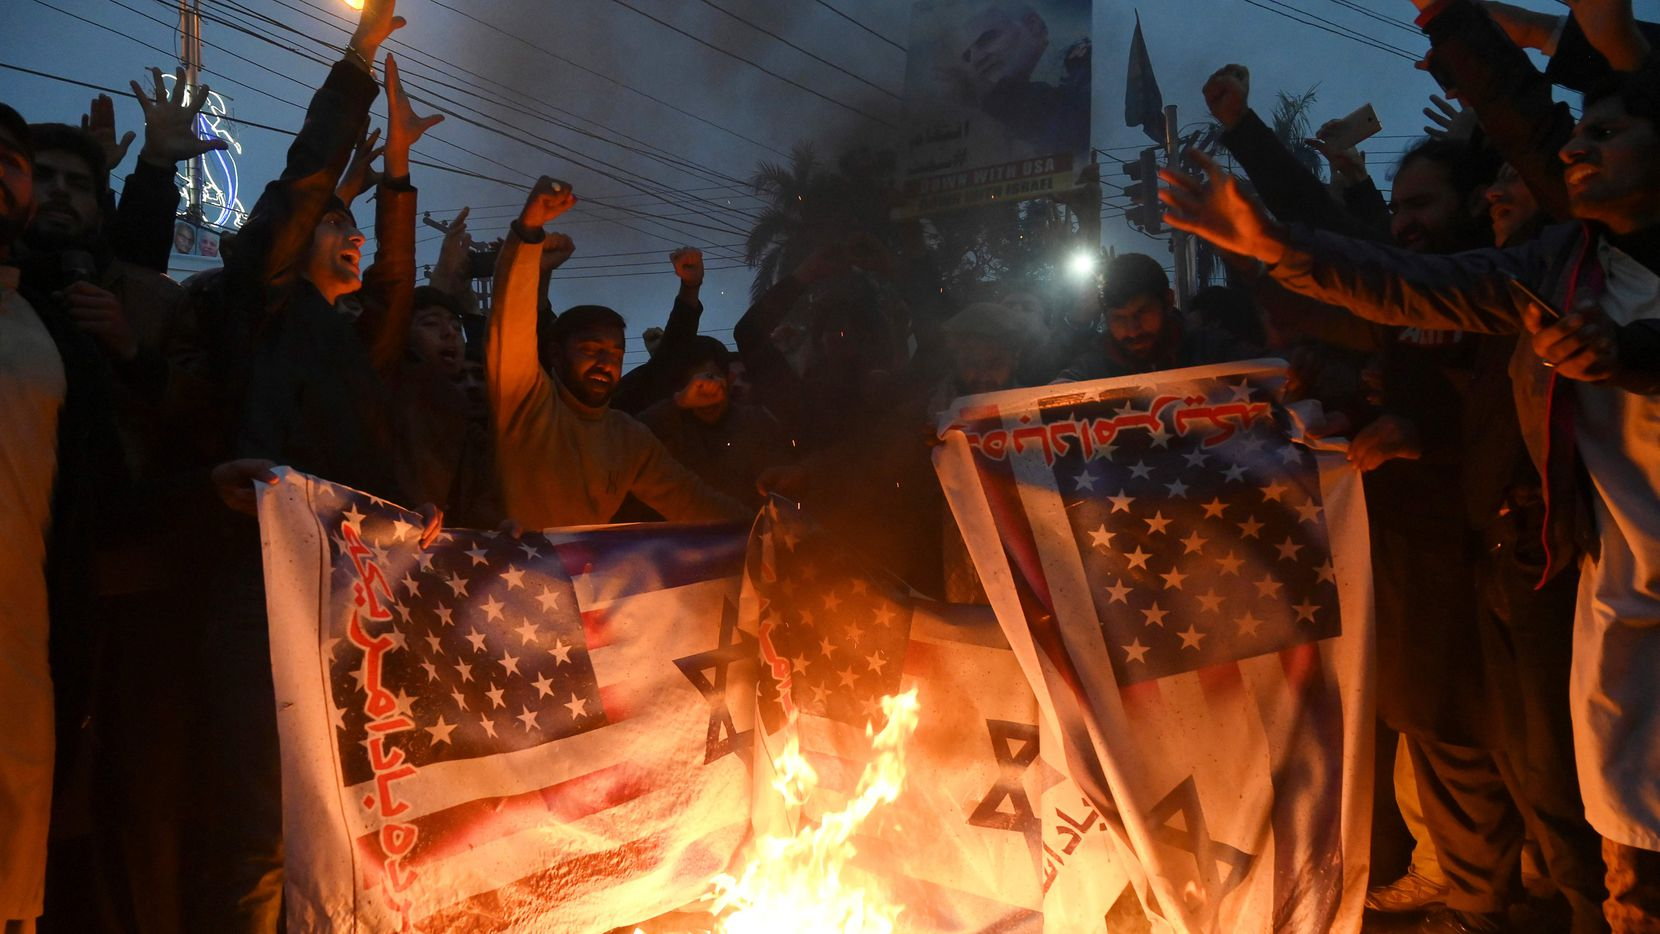 Pakistanis burn U.S. and Israeli flags in a protest against the killing of top Iranian commander Qassem Soleimani.